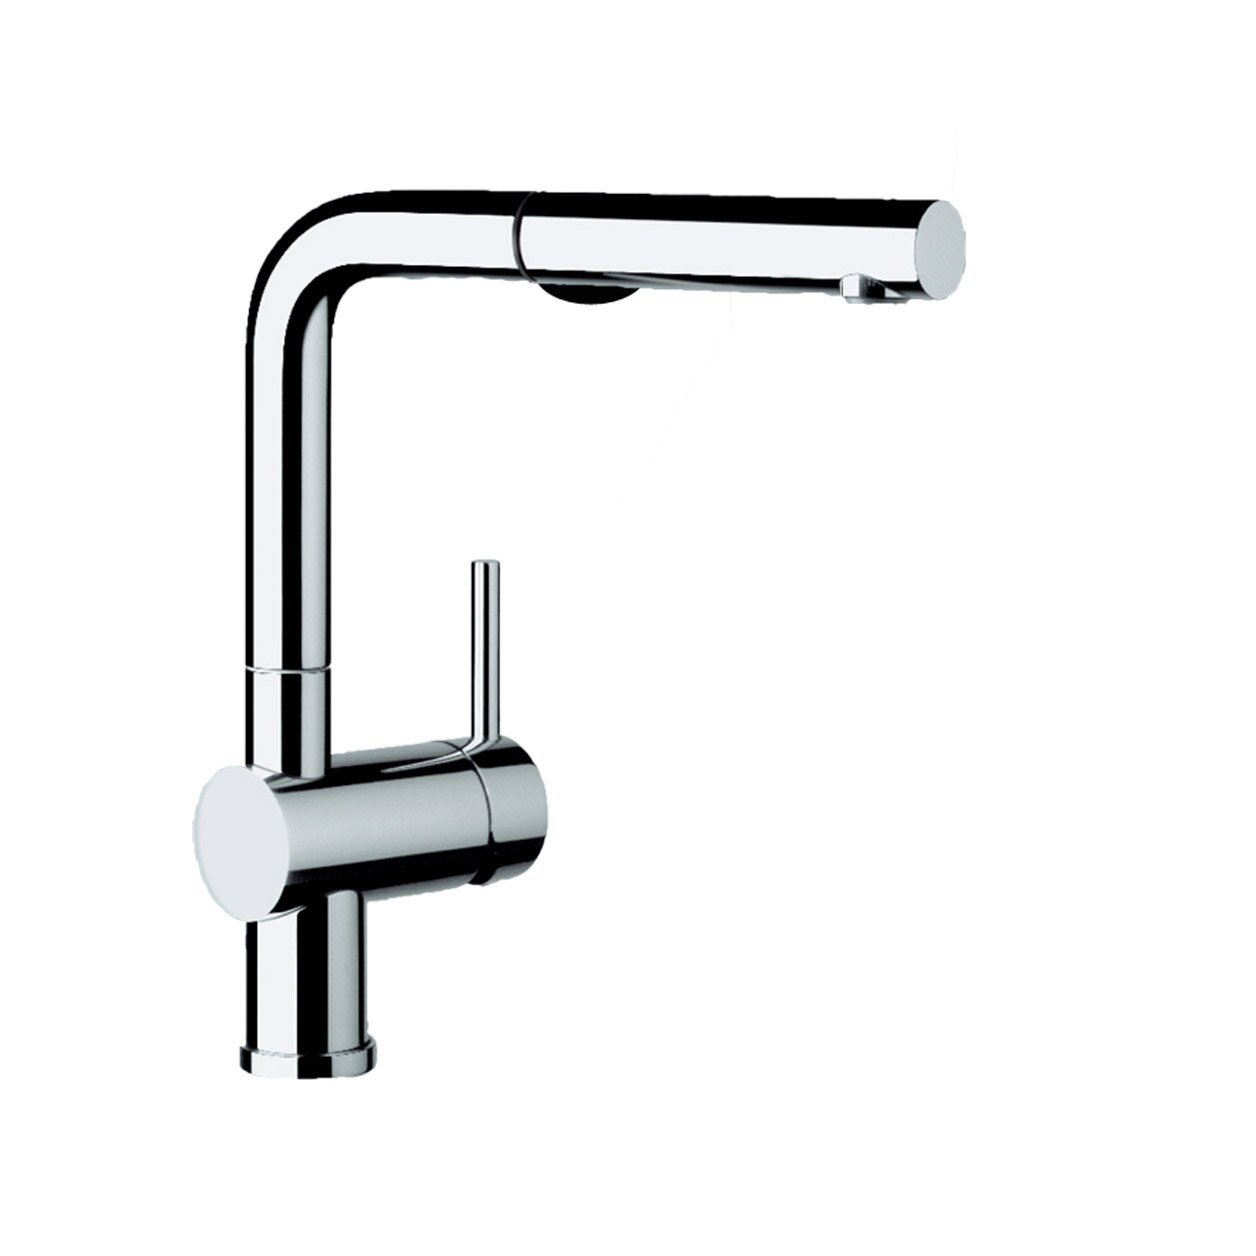 Blanco Kitchen Faucet Reviews : Blanco Linus Single Handle Deck Mounted Kitchen Faucet with Dual Pull ...